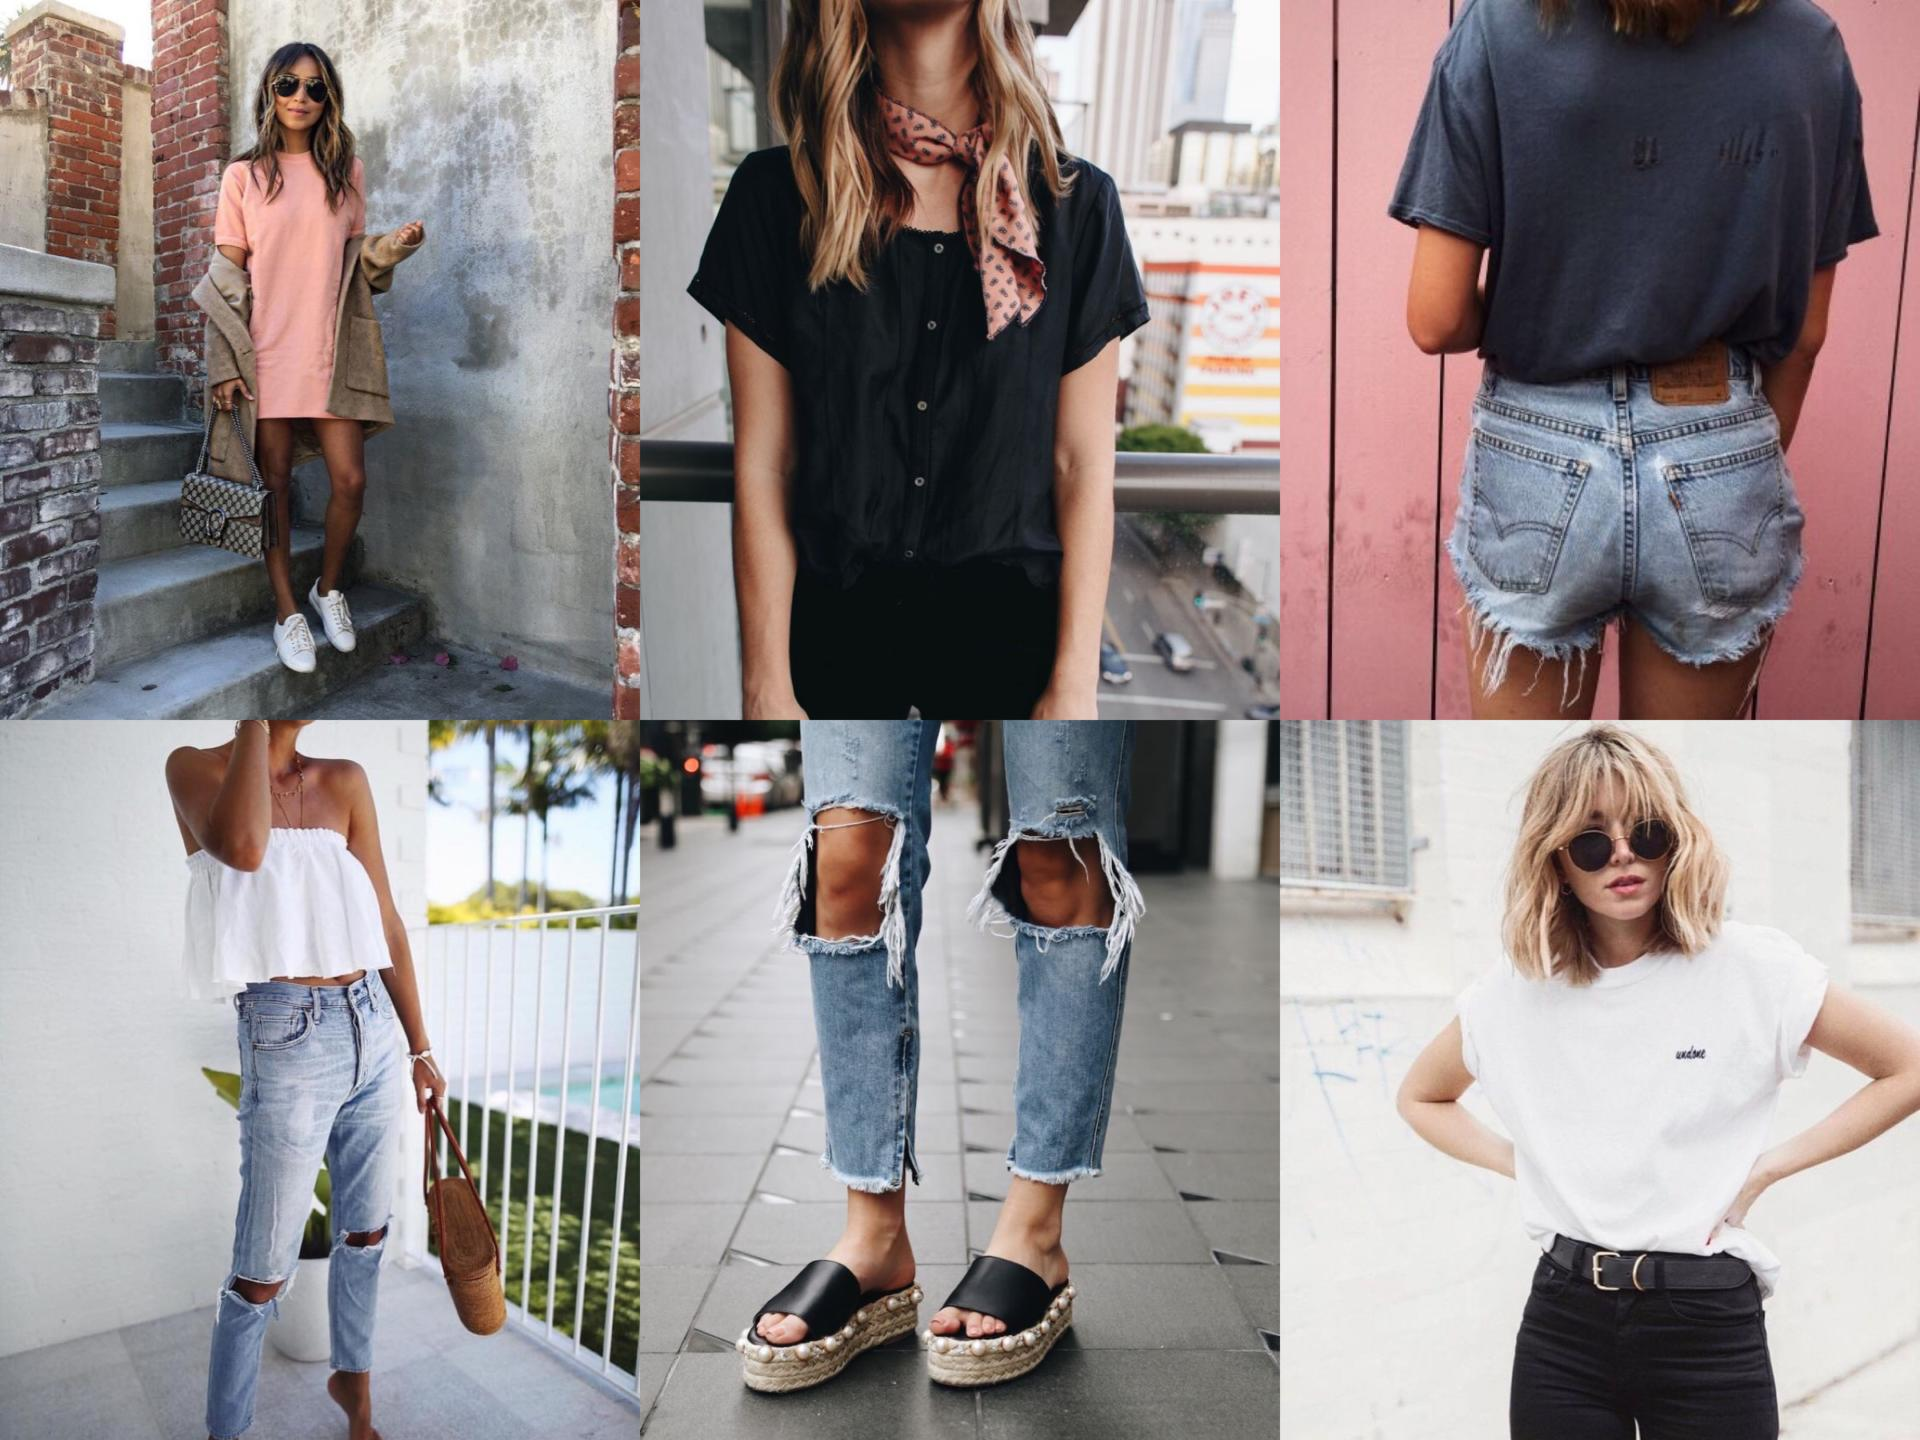 5 Must-Have Fashion Items For Endless Outfit Combos - Abby Saylor